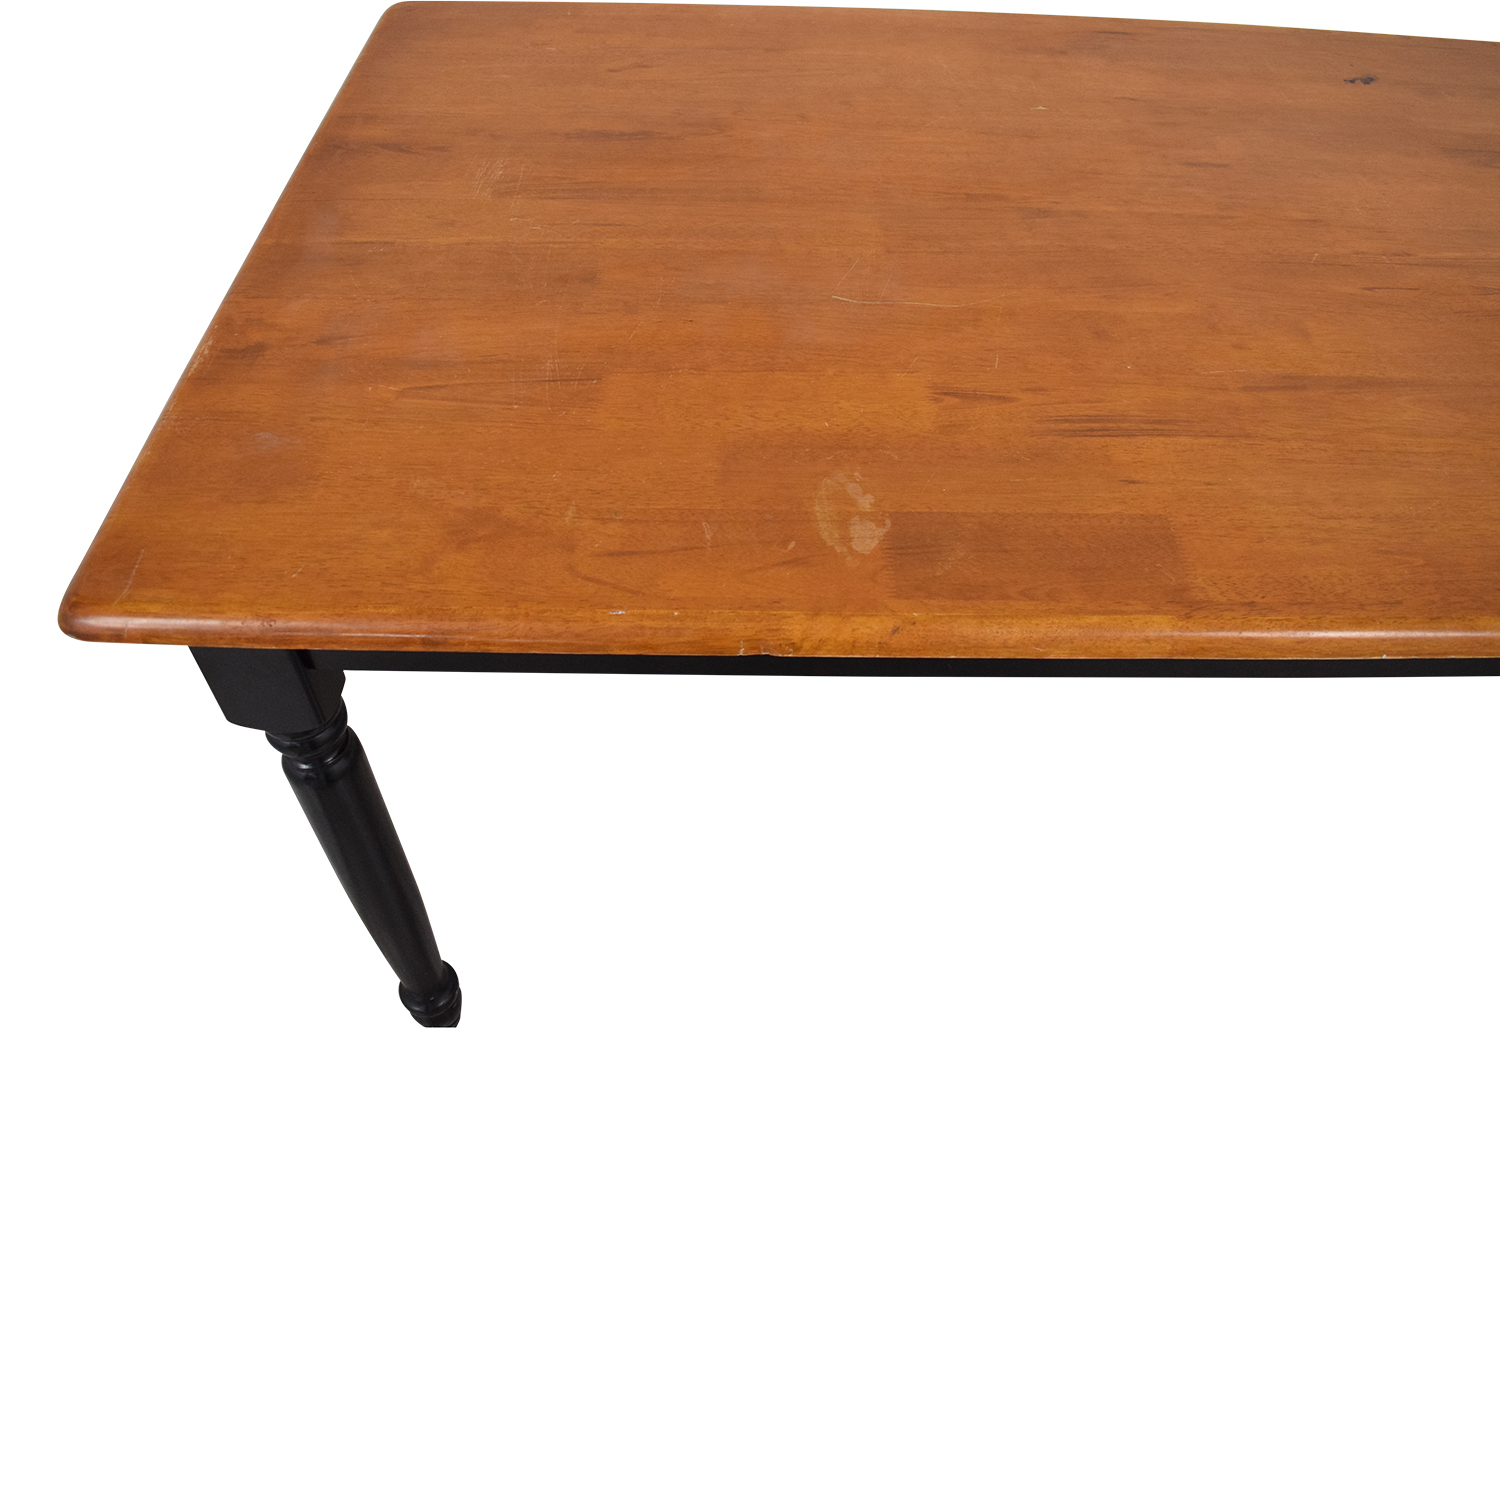 Pottery Barn Wood Dining Table sale